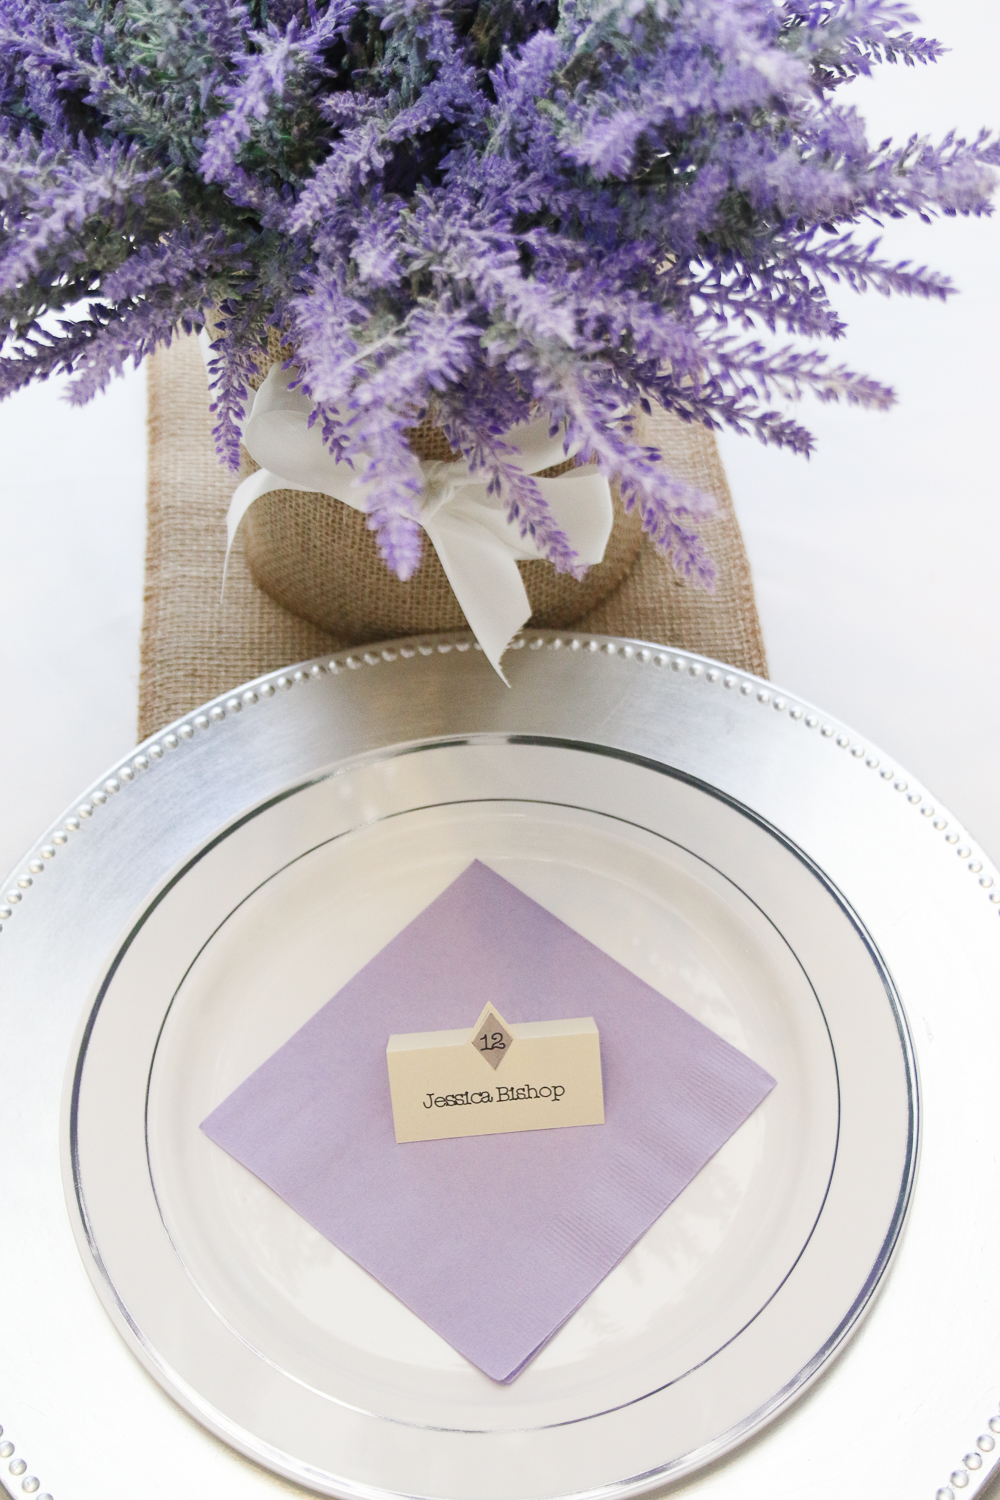 Diamond Pop-Up Place Cards with the Cricut Explore Air